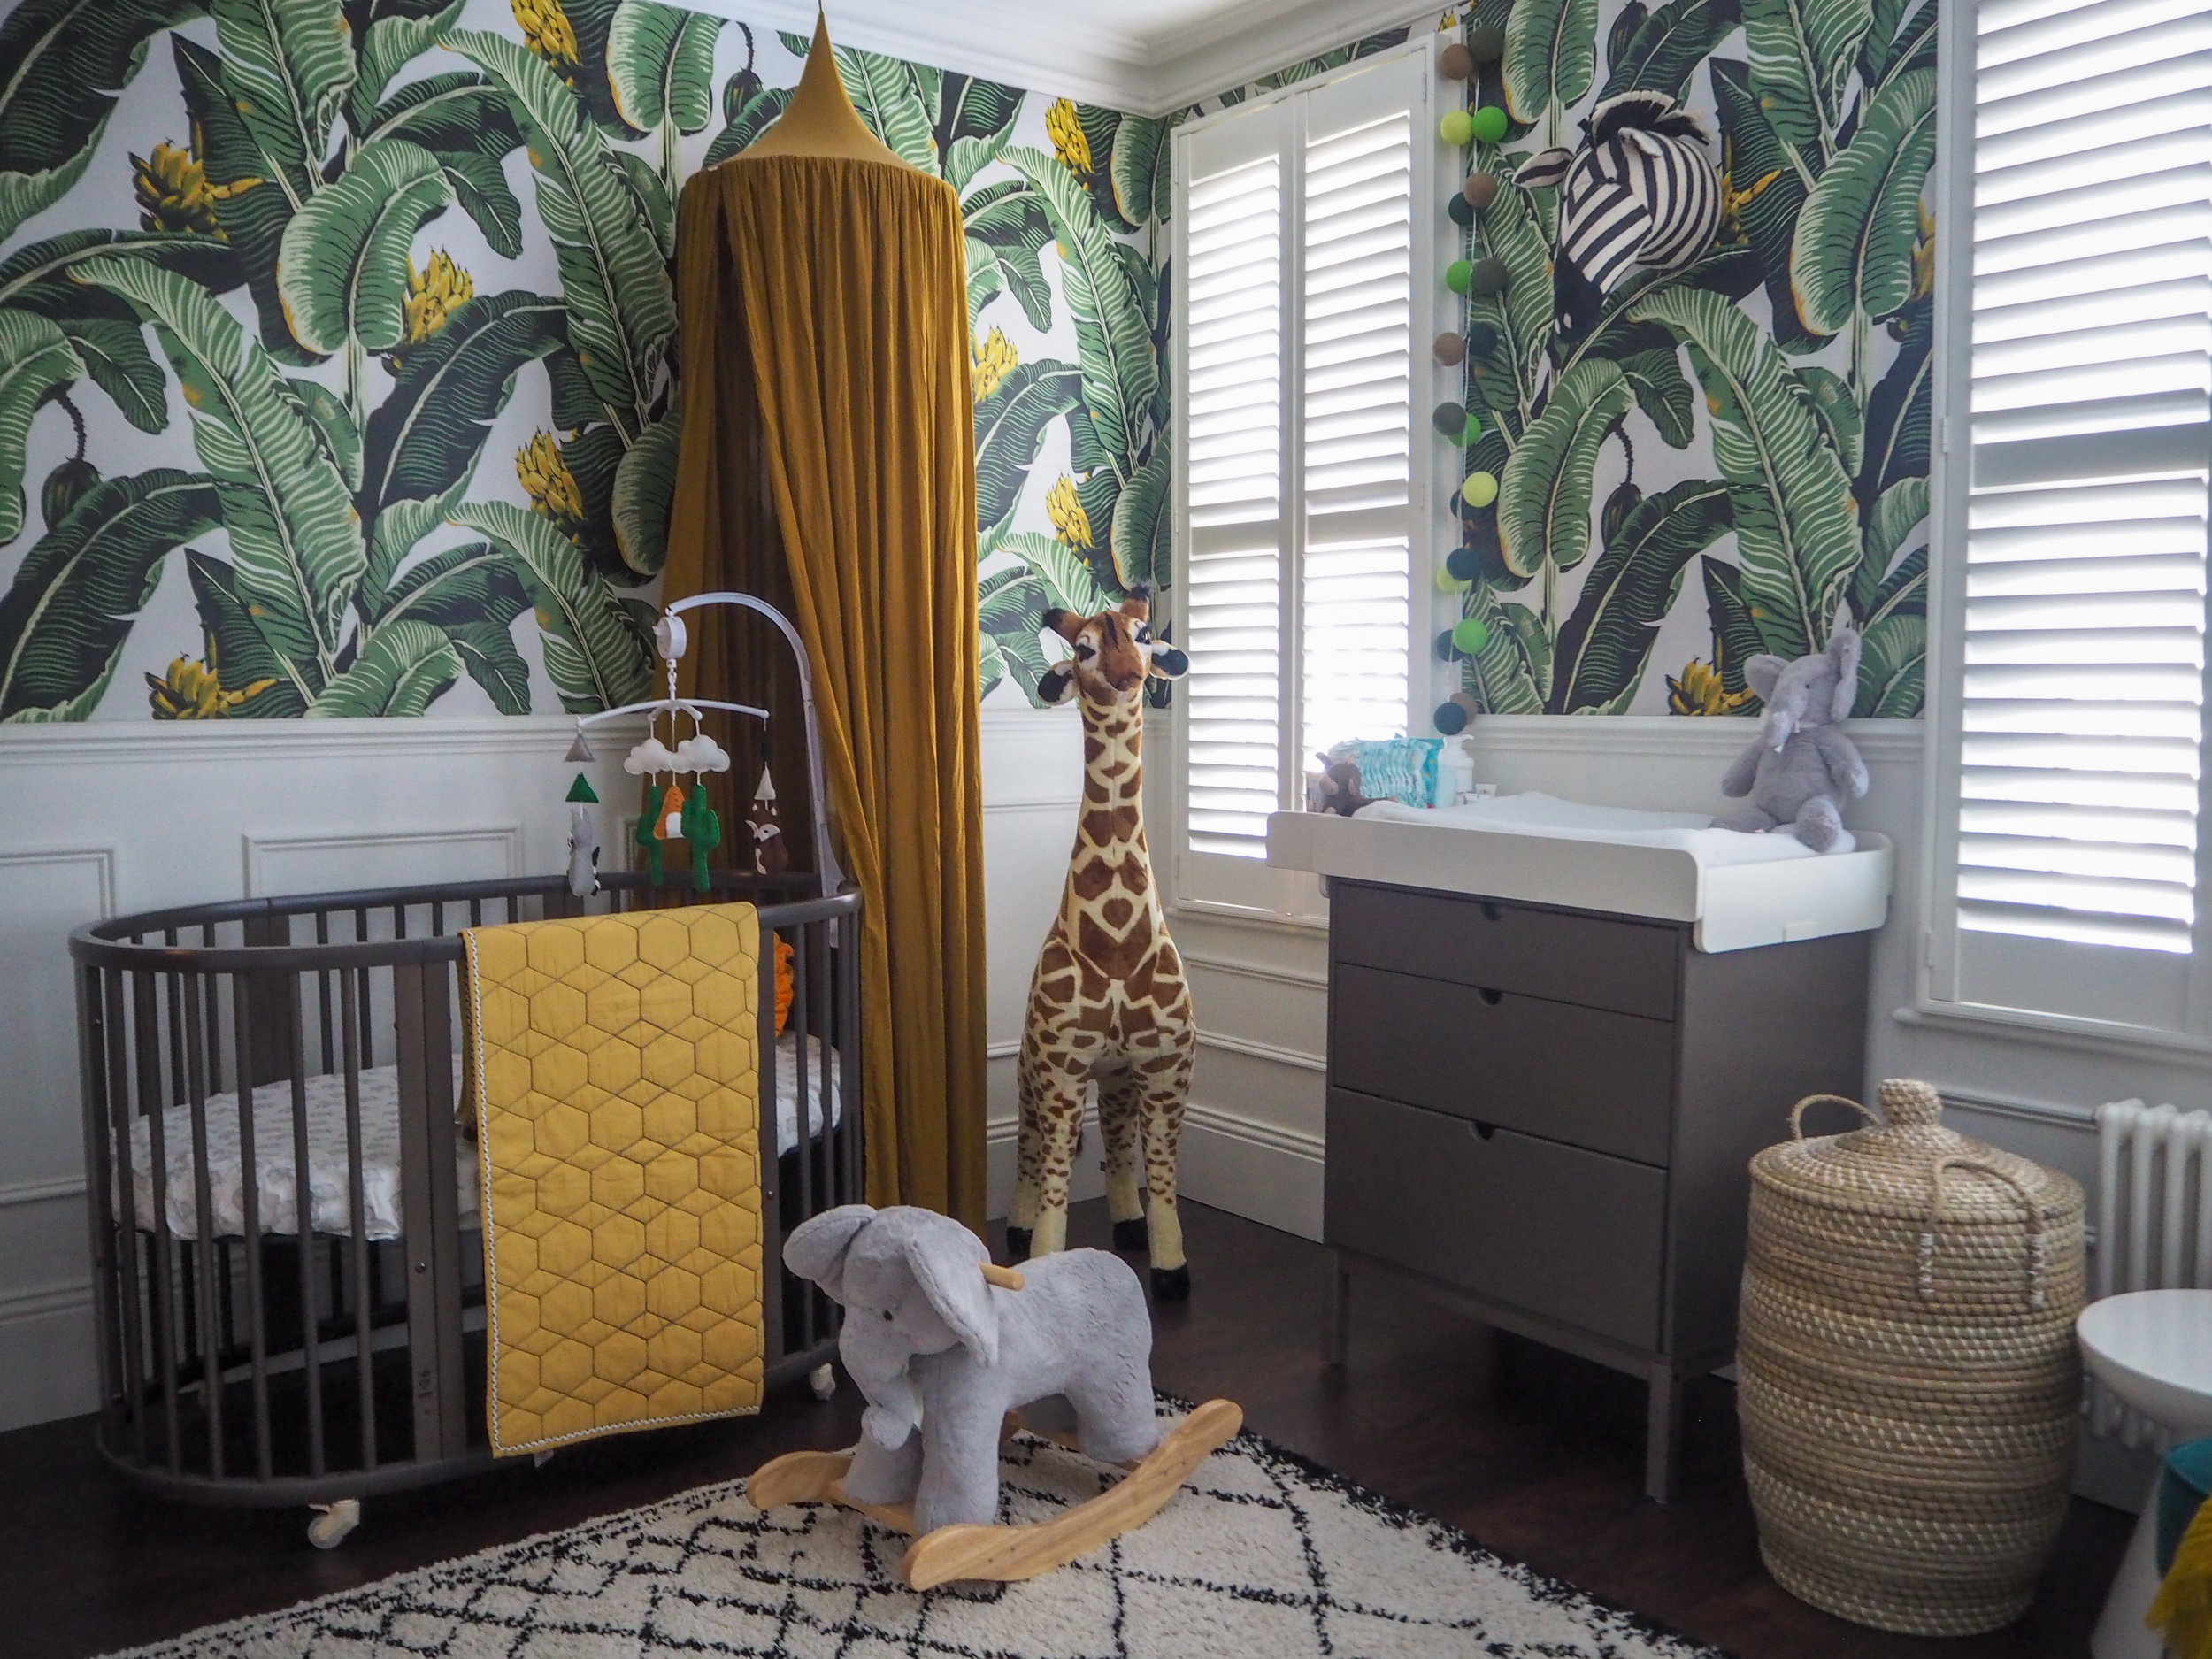 Elephant plush rocker   £149 from Pottery barn kids;   Honeycomb Baby Bed    quilt  £79 from Pottery barn kids;   sleepi cot in grey   £575 from Stokke;   Melissa & Doug Plush Giraffe   £84.99 from Argos.   Zebra animal head   prices from £29.99 from Fiona walker England.